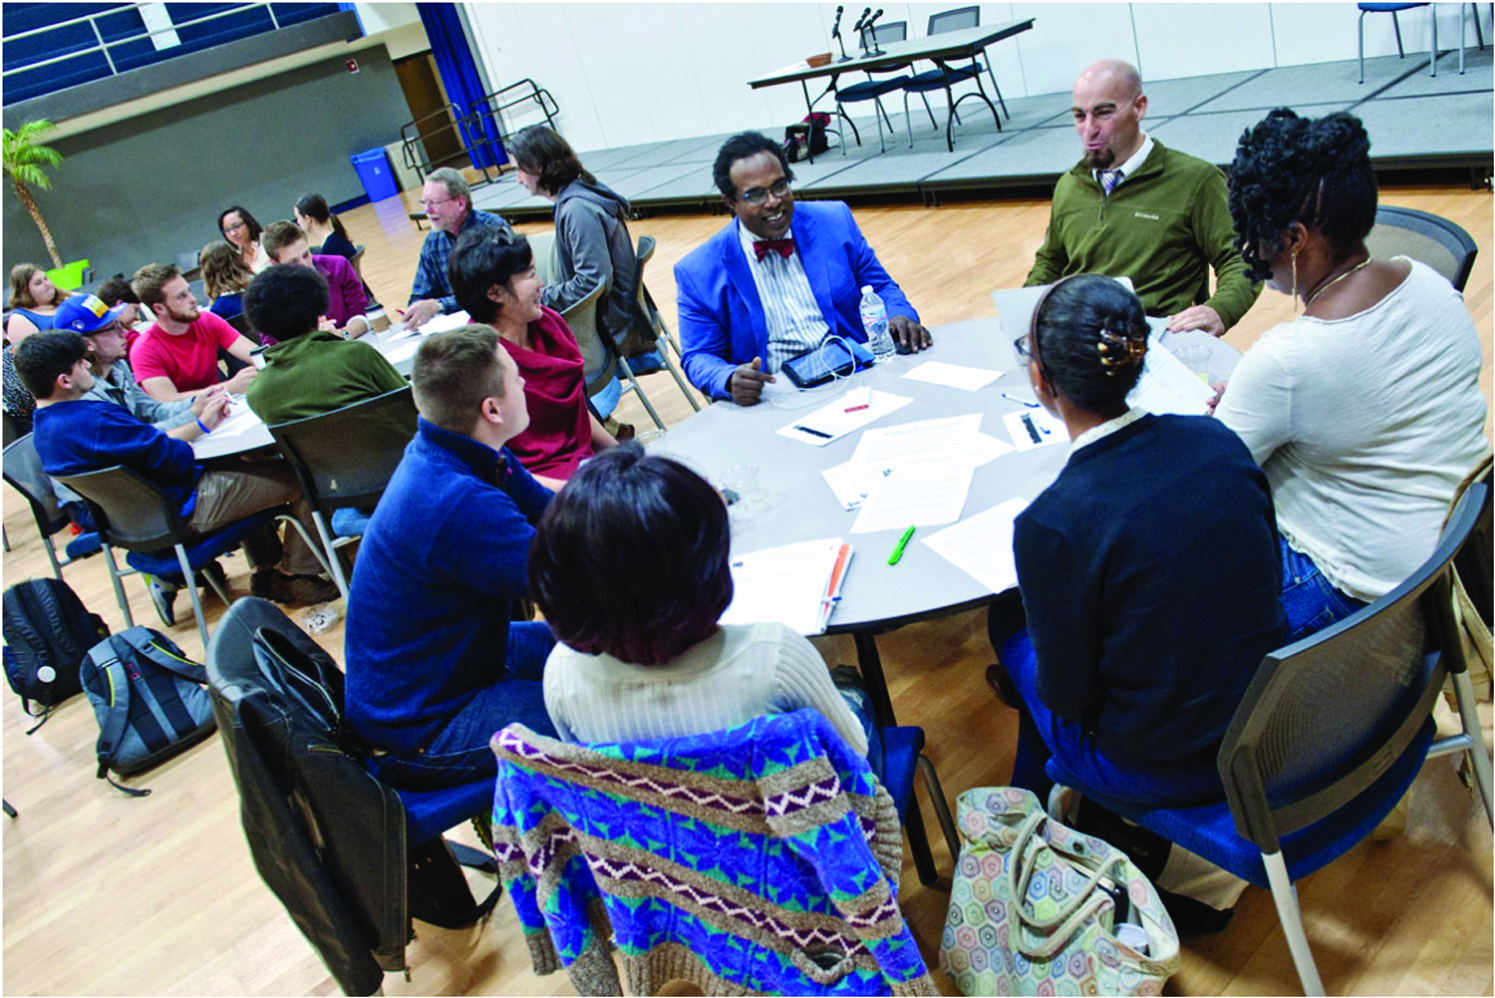 Faculty, staff and students discuss Saint Louis University's Oath of Inclusion in the Center for Global Citizenship in October 2014. Photo by Michelle Peltier.